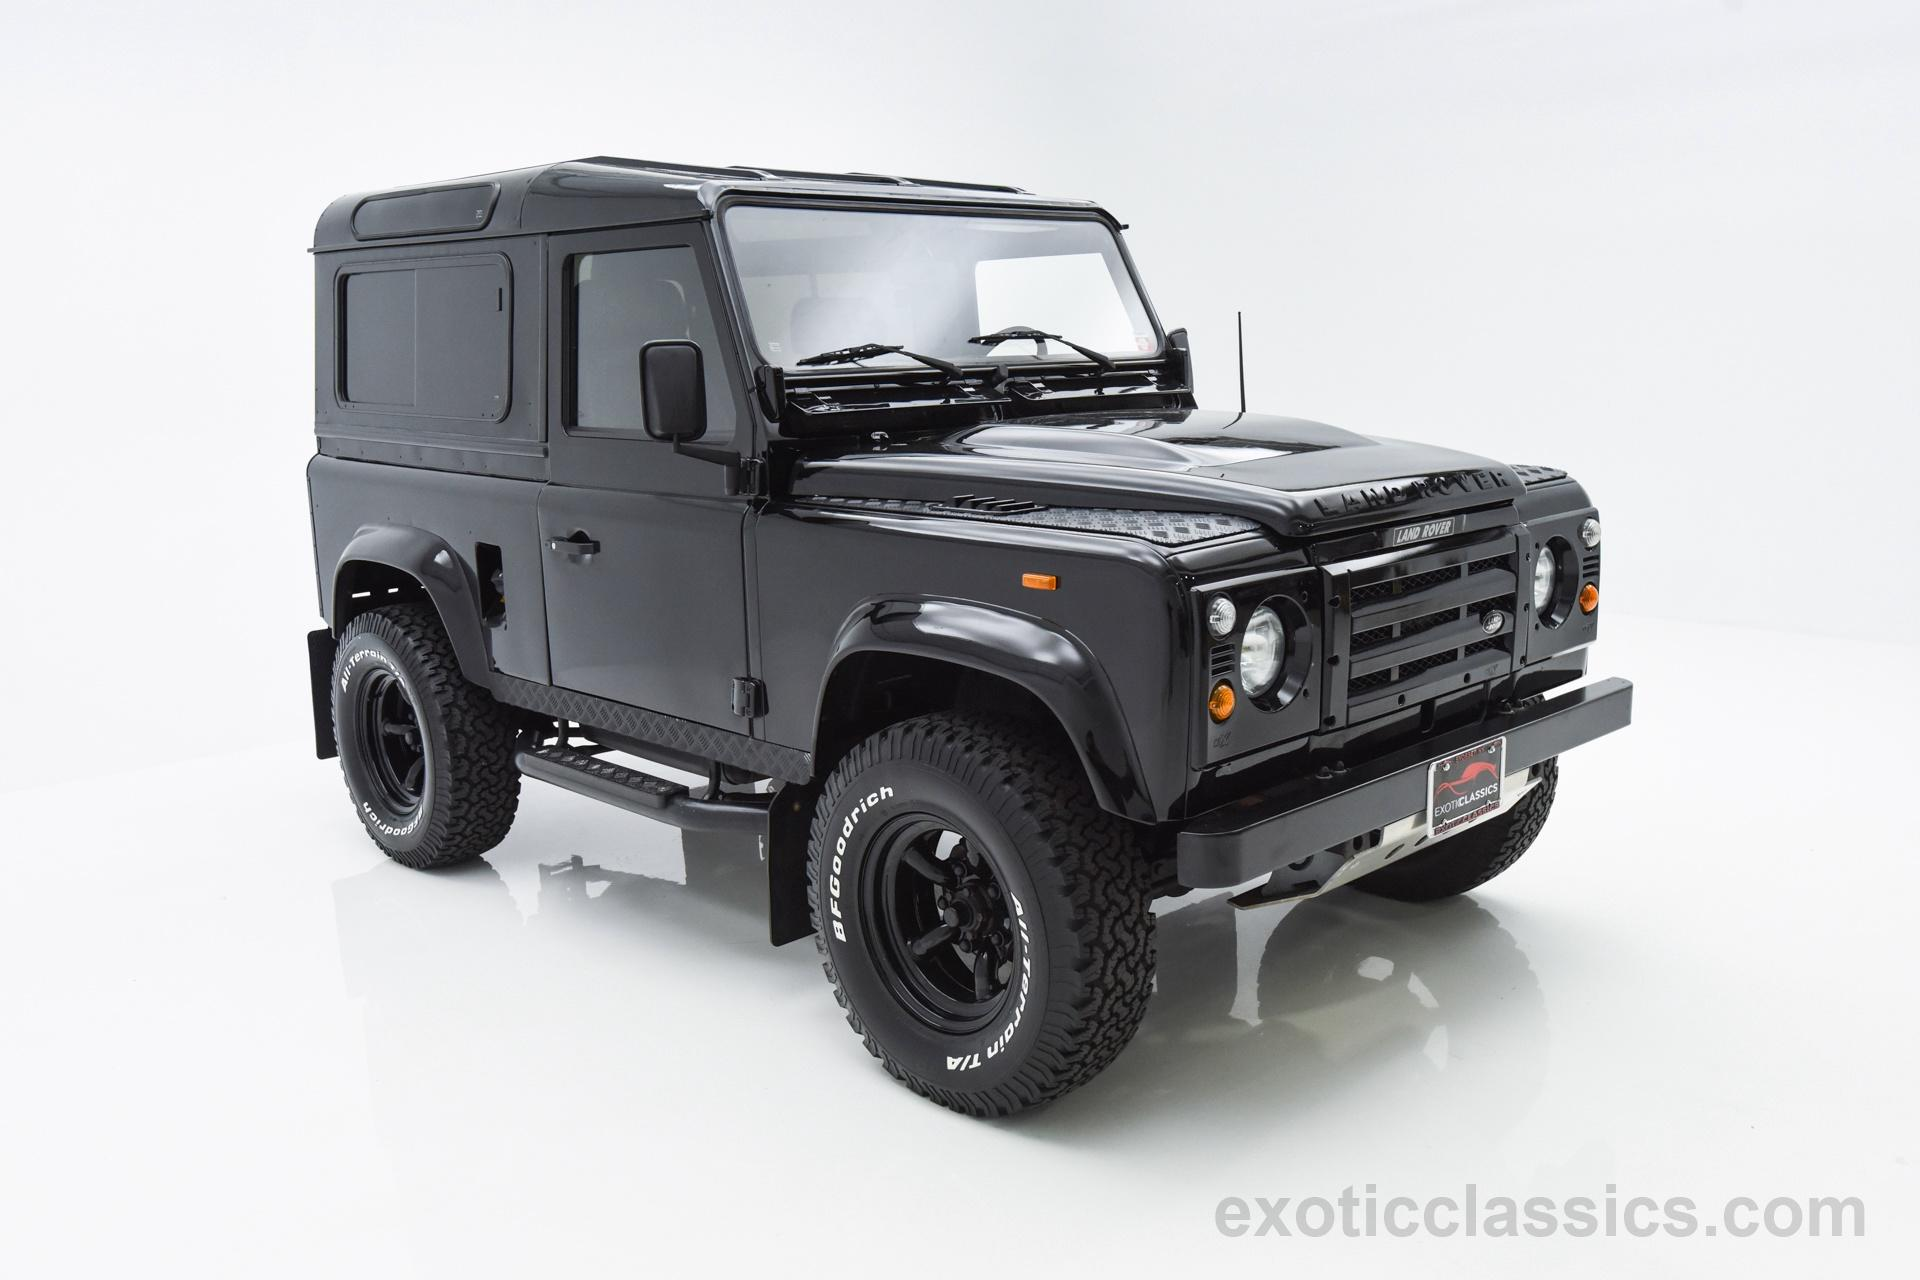 land rover defender color with 1987 Land 20rover Defender 2090 C 556 on 73752 Land Rover 110 Pickup Armoured further 5643 1990 Land Rover Defender 110 Expeditionoverland further 1987 Land 20rover Defender 2090 C 556 moreover  moreover 26614 Range Rover Tdv8 Vogue.